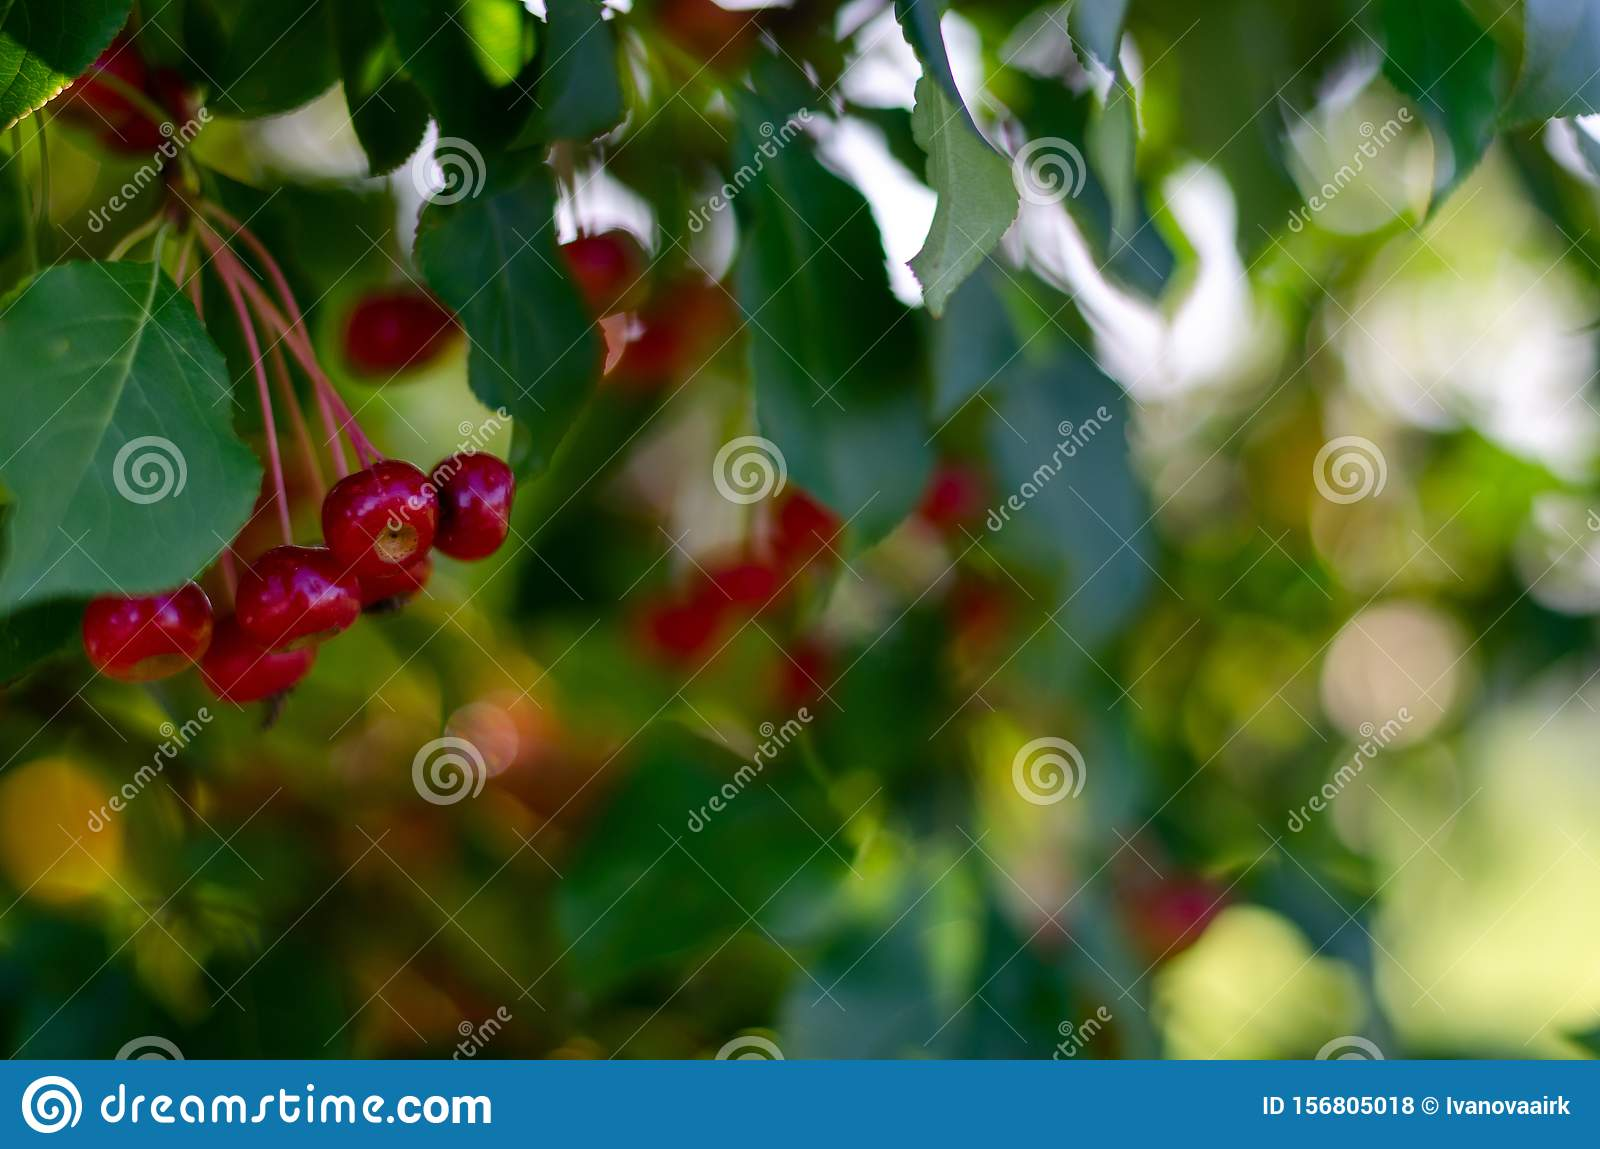 Rennet tree. red ripe apples on a branch Apple tree Small apple